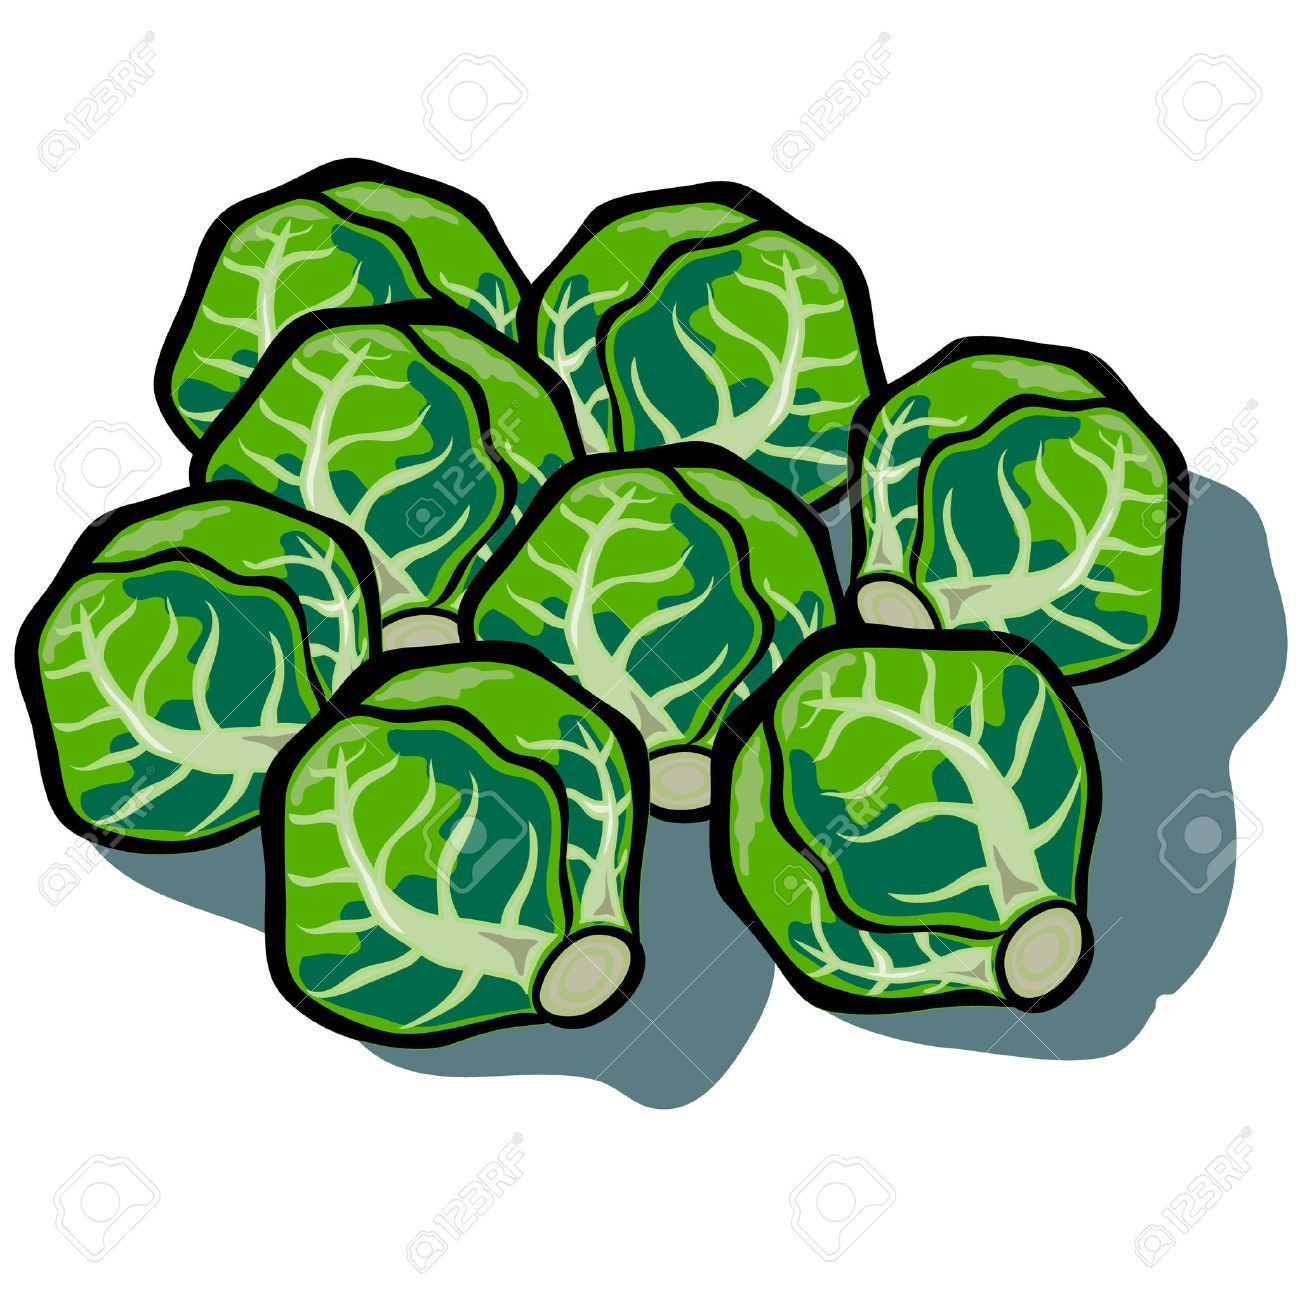 Clipart sprouts royalty free Sprouts clipart 6 » Clipart Portal royalty free